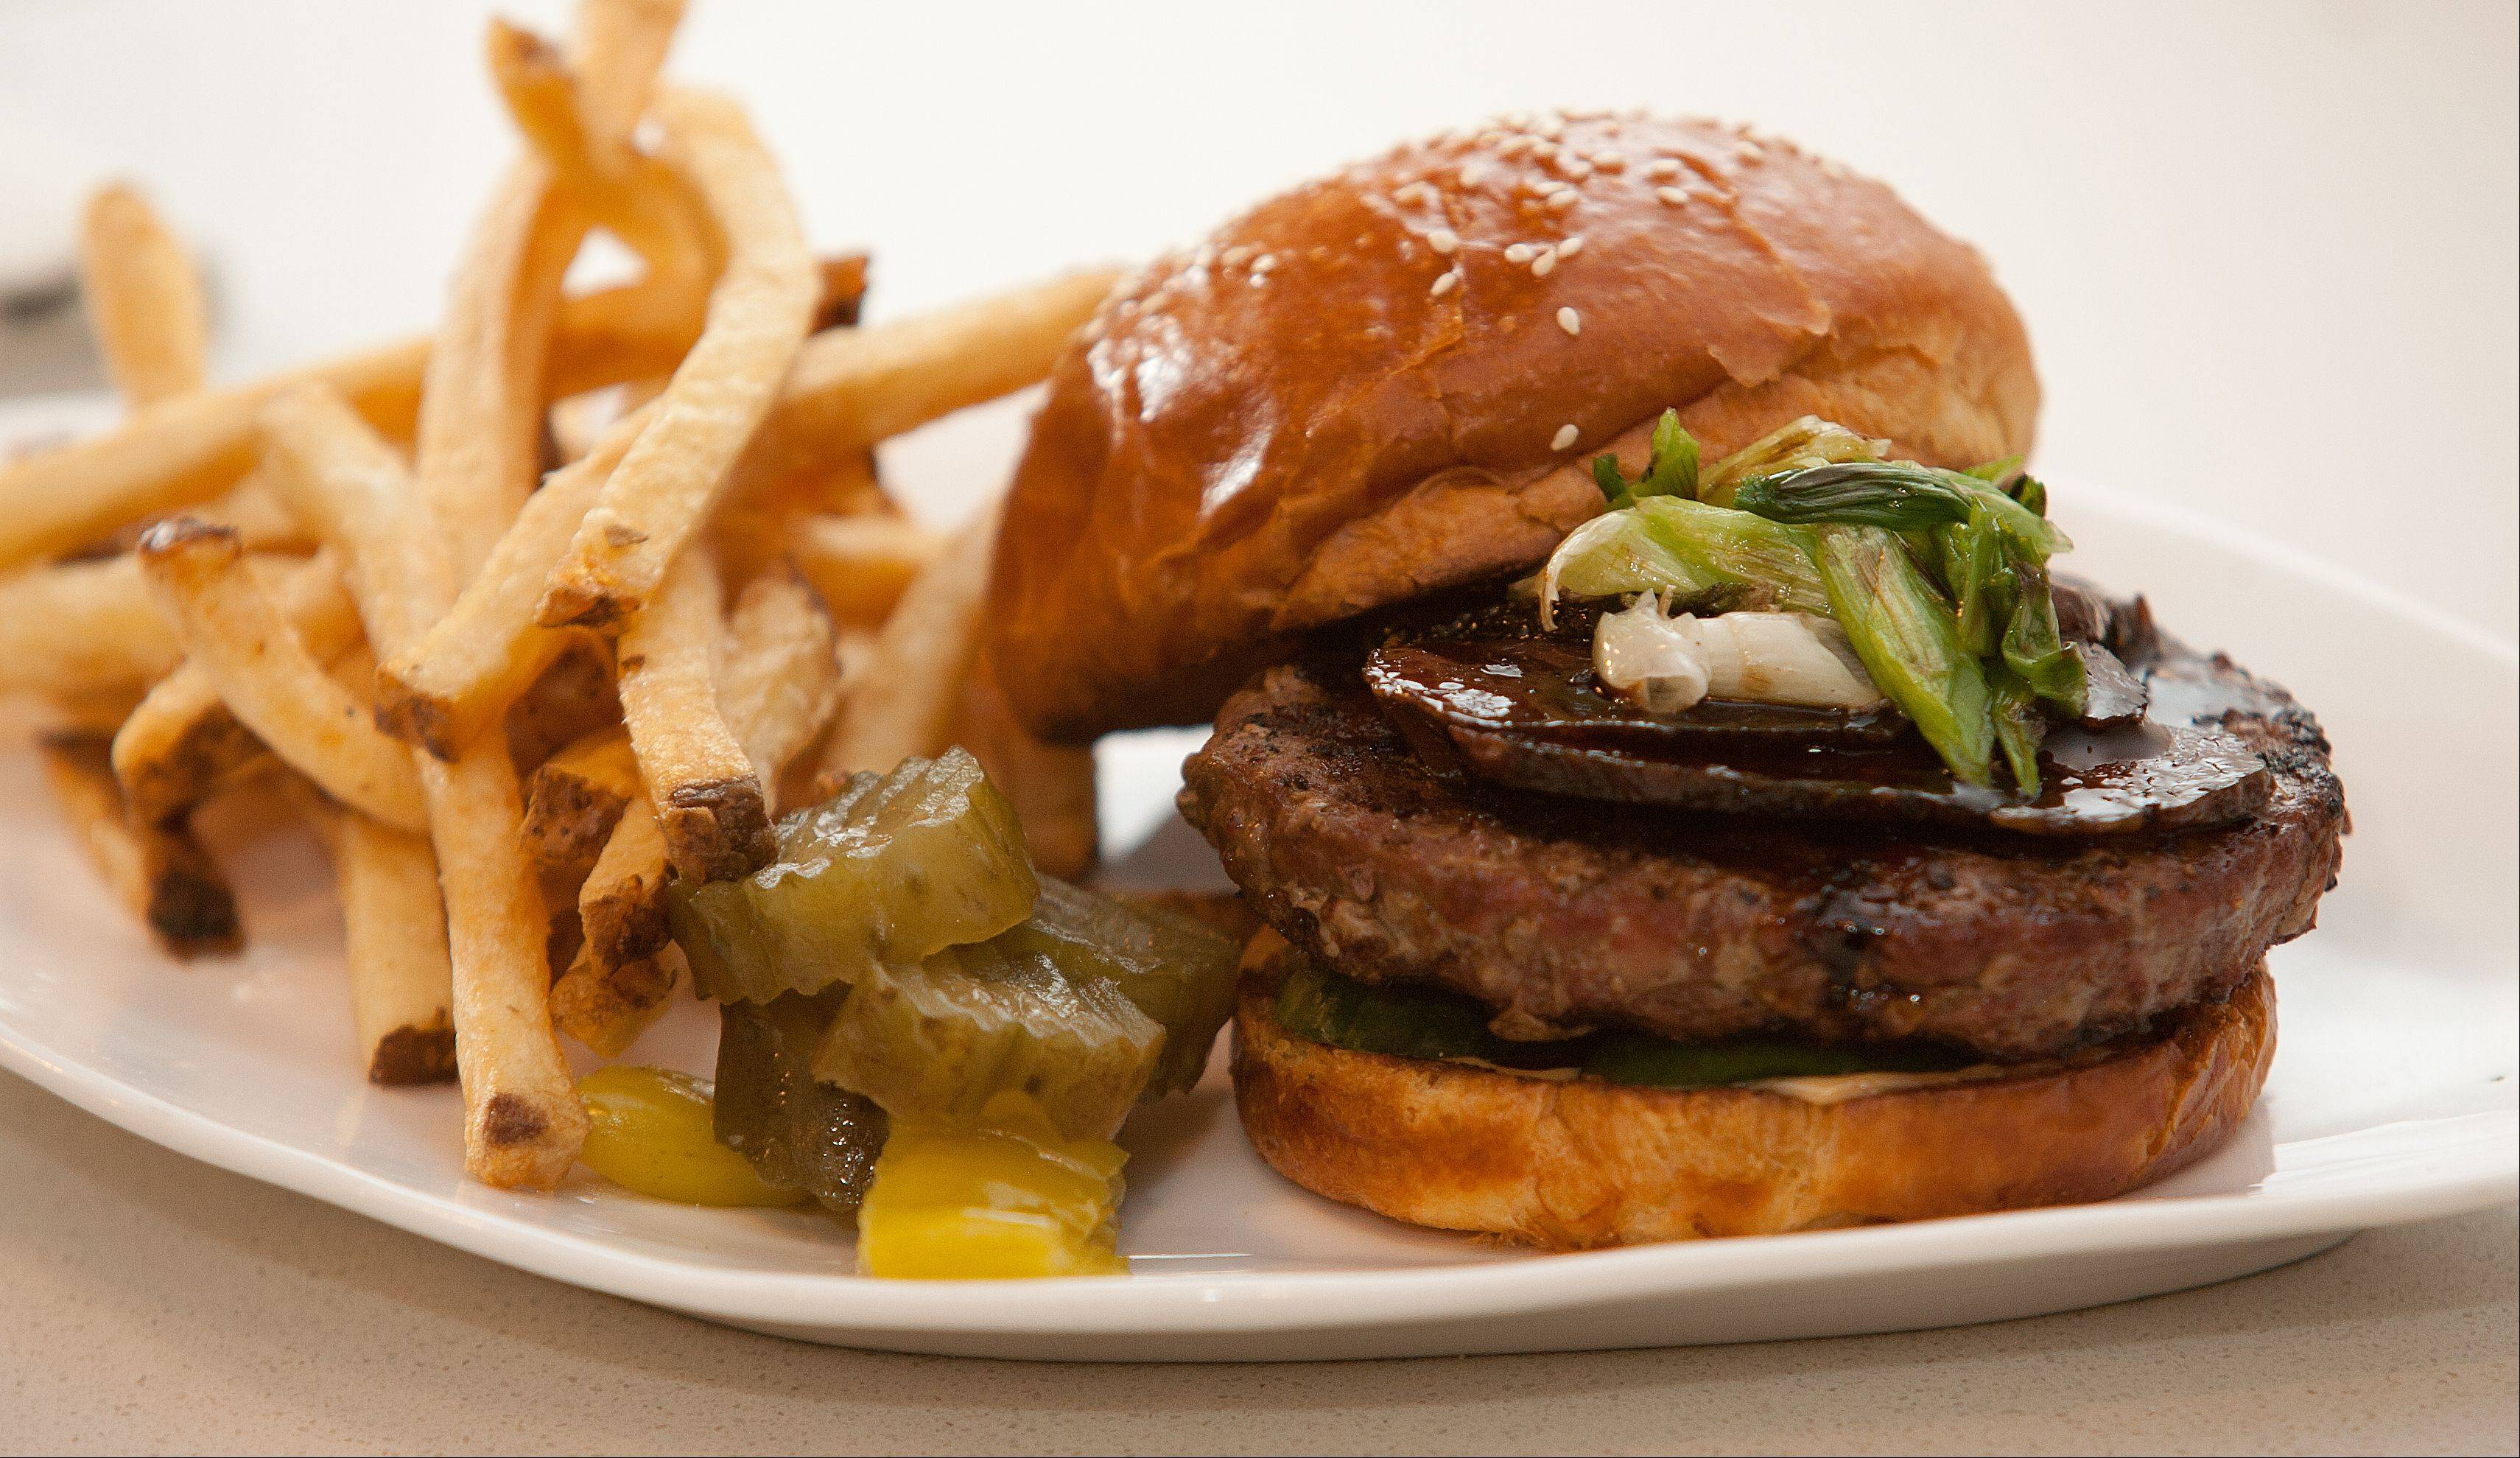 Artisan Table's hoisin burger features braised short ribs, cucumber, grilled green onion and Sriracha mayo.